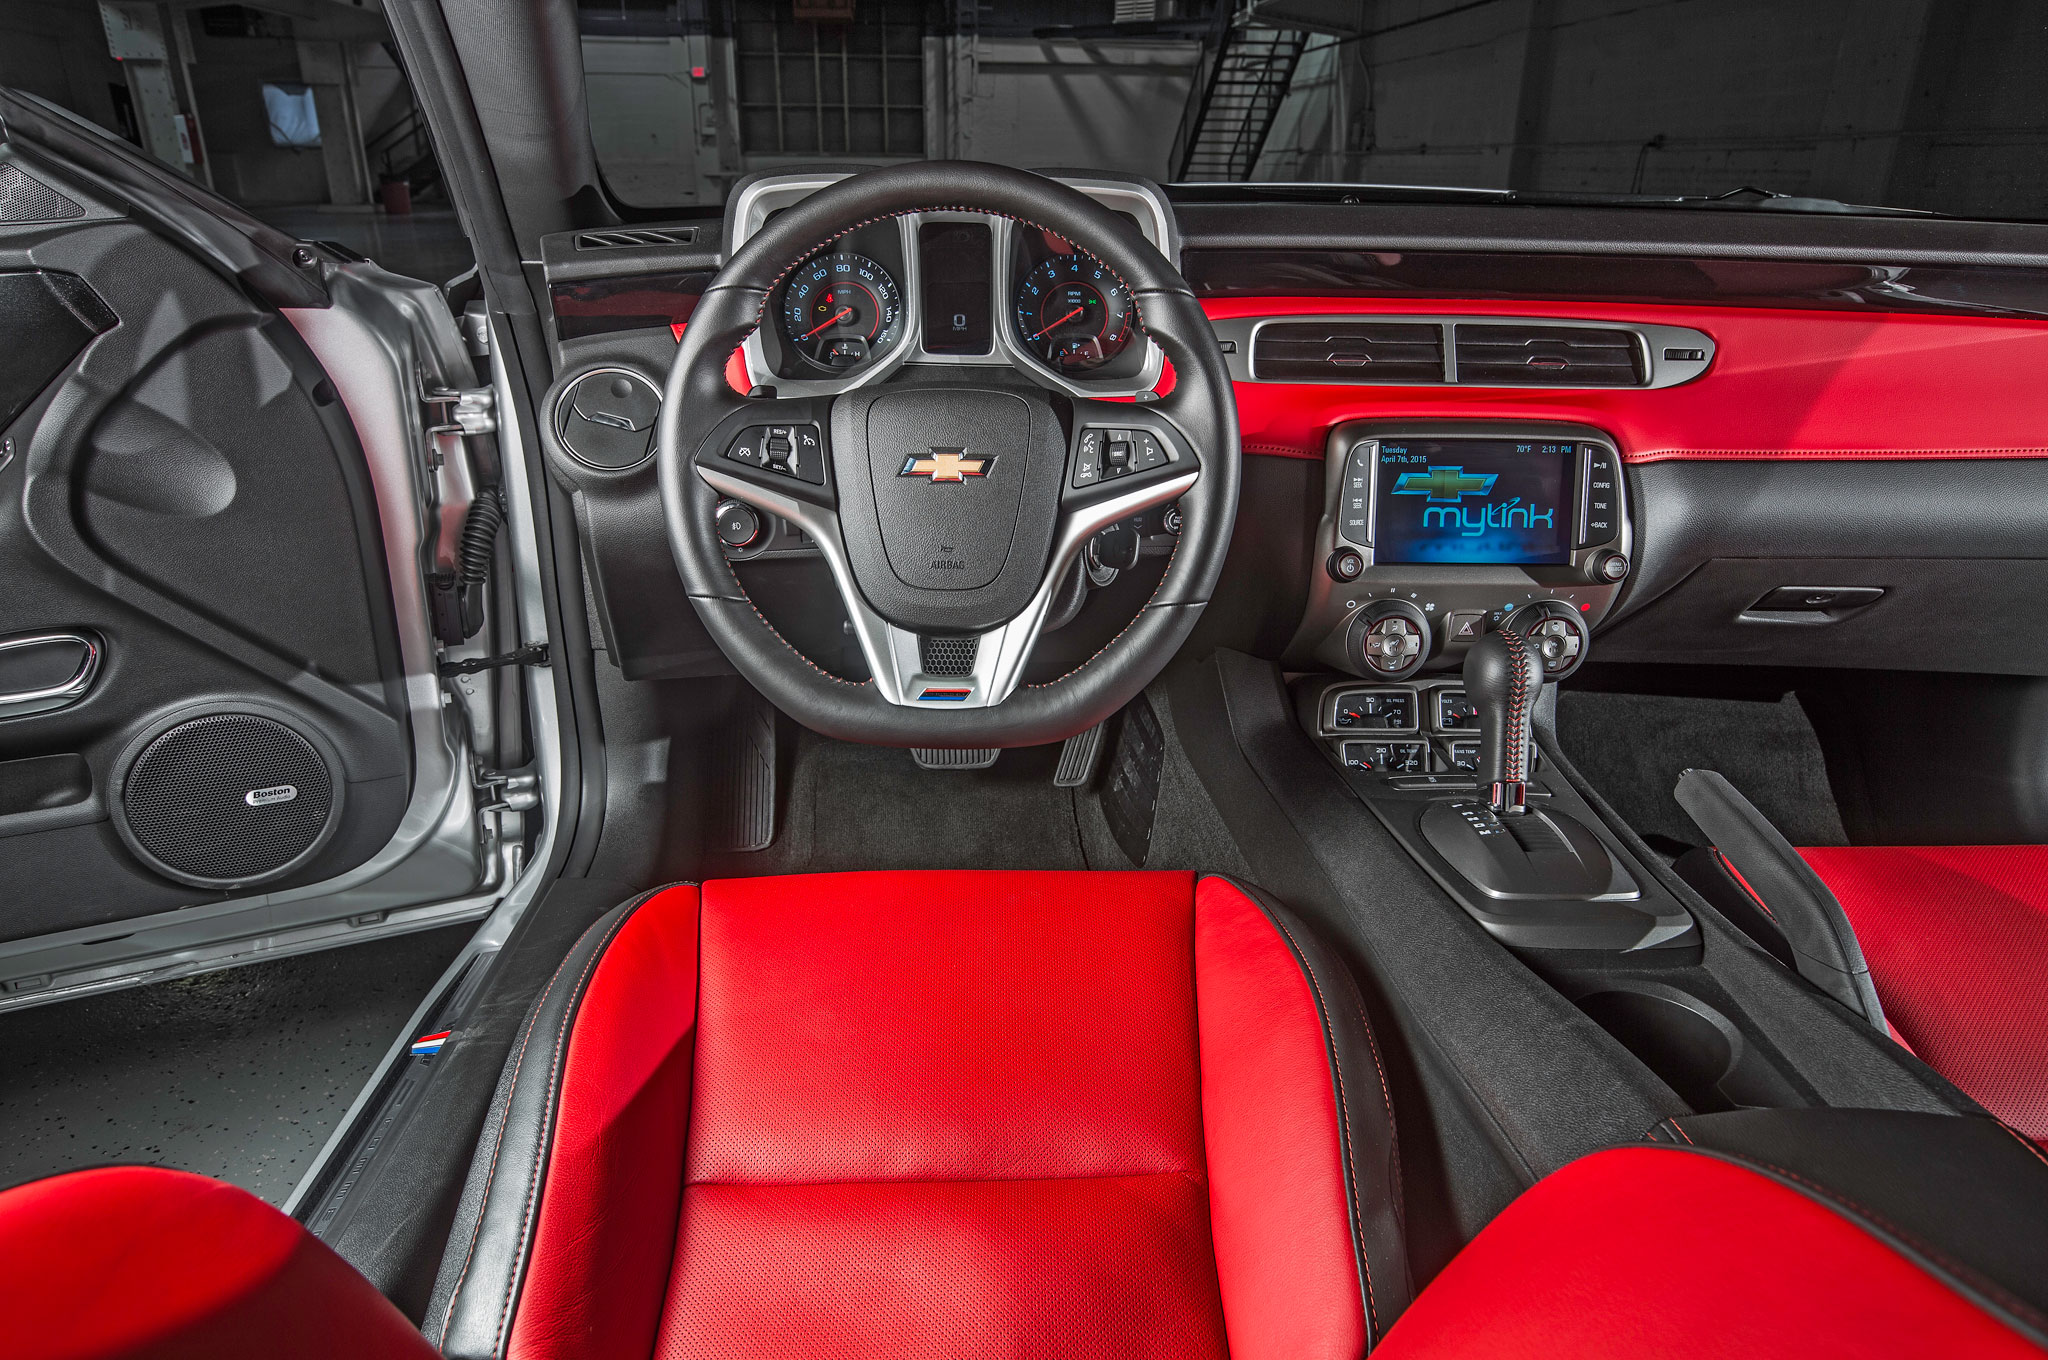 2016 Chevrolet Camaro Revealed Inside The New Sixth Gen